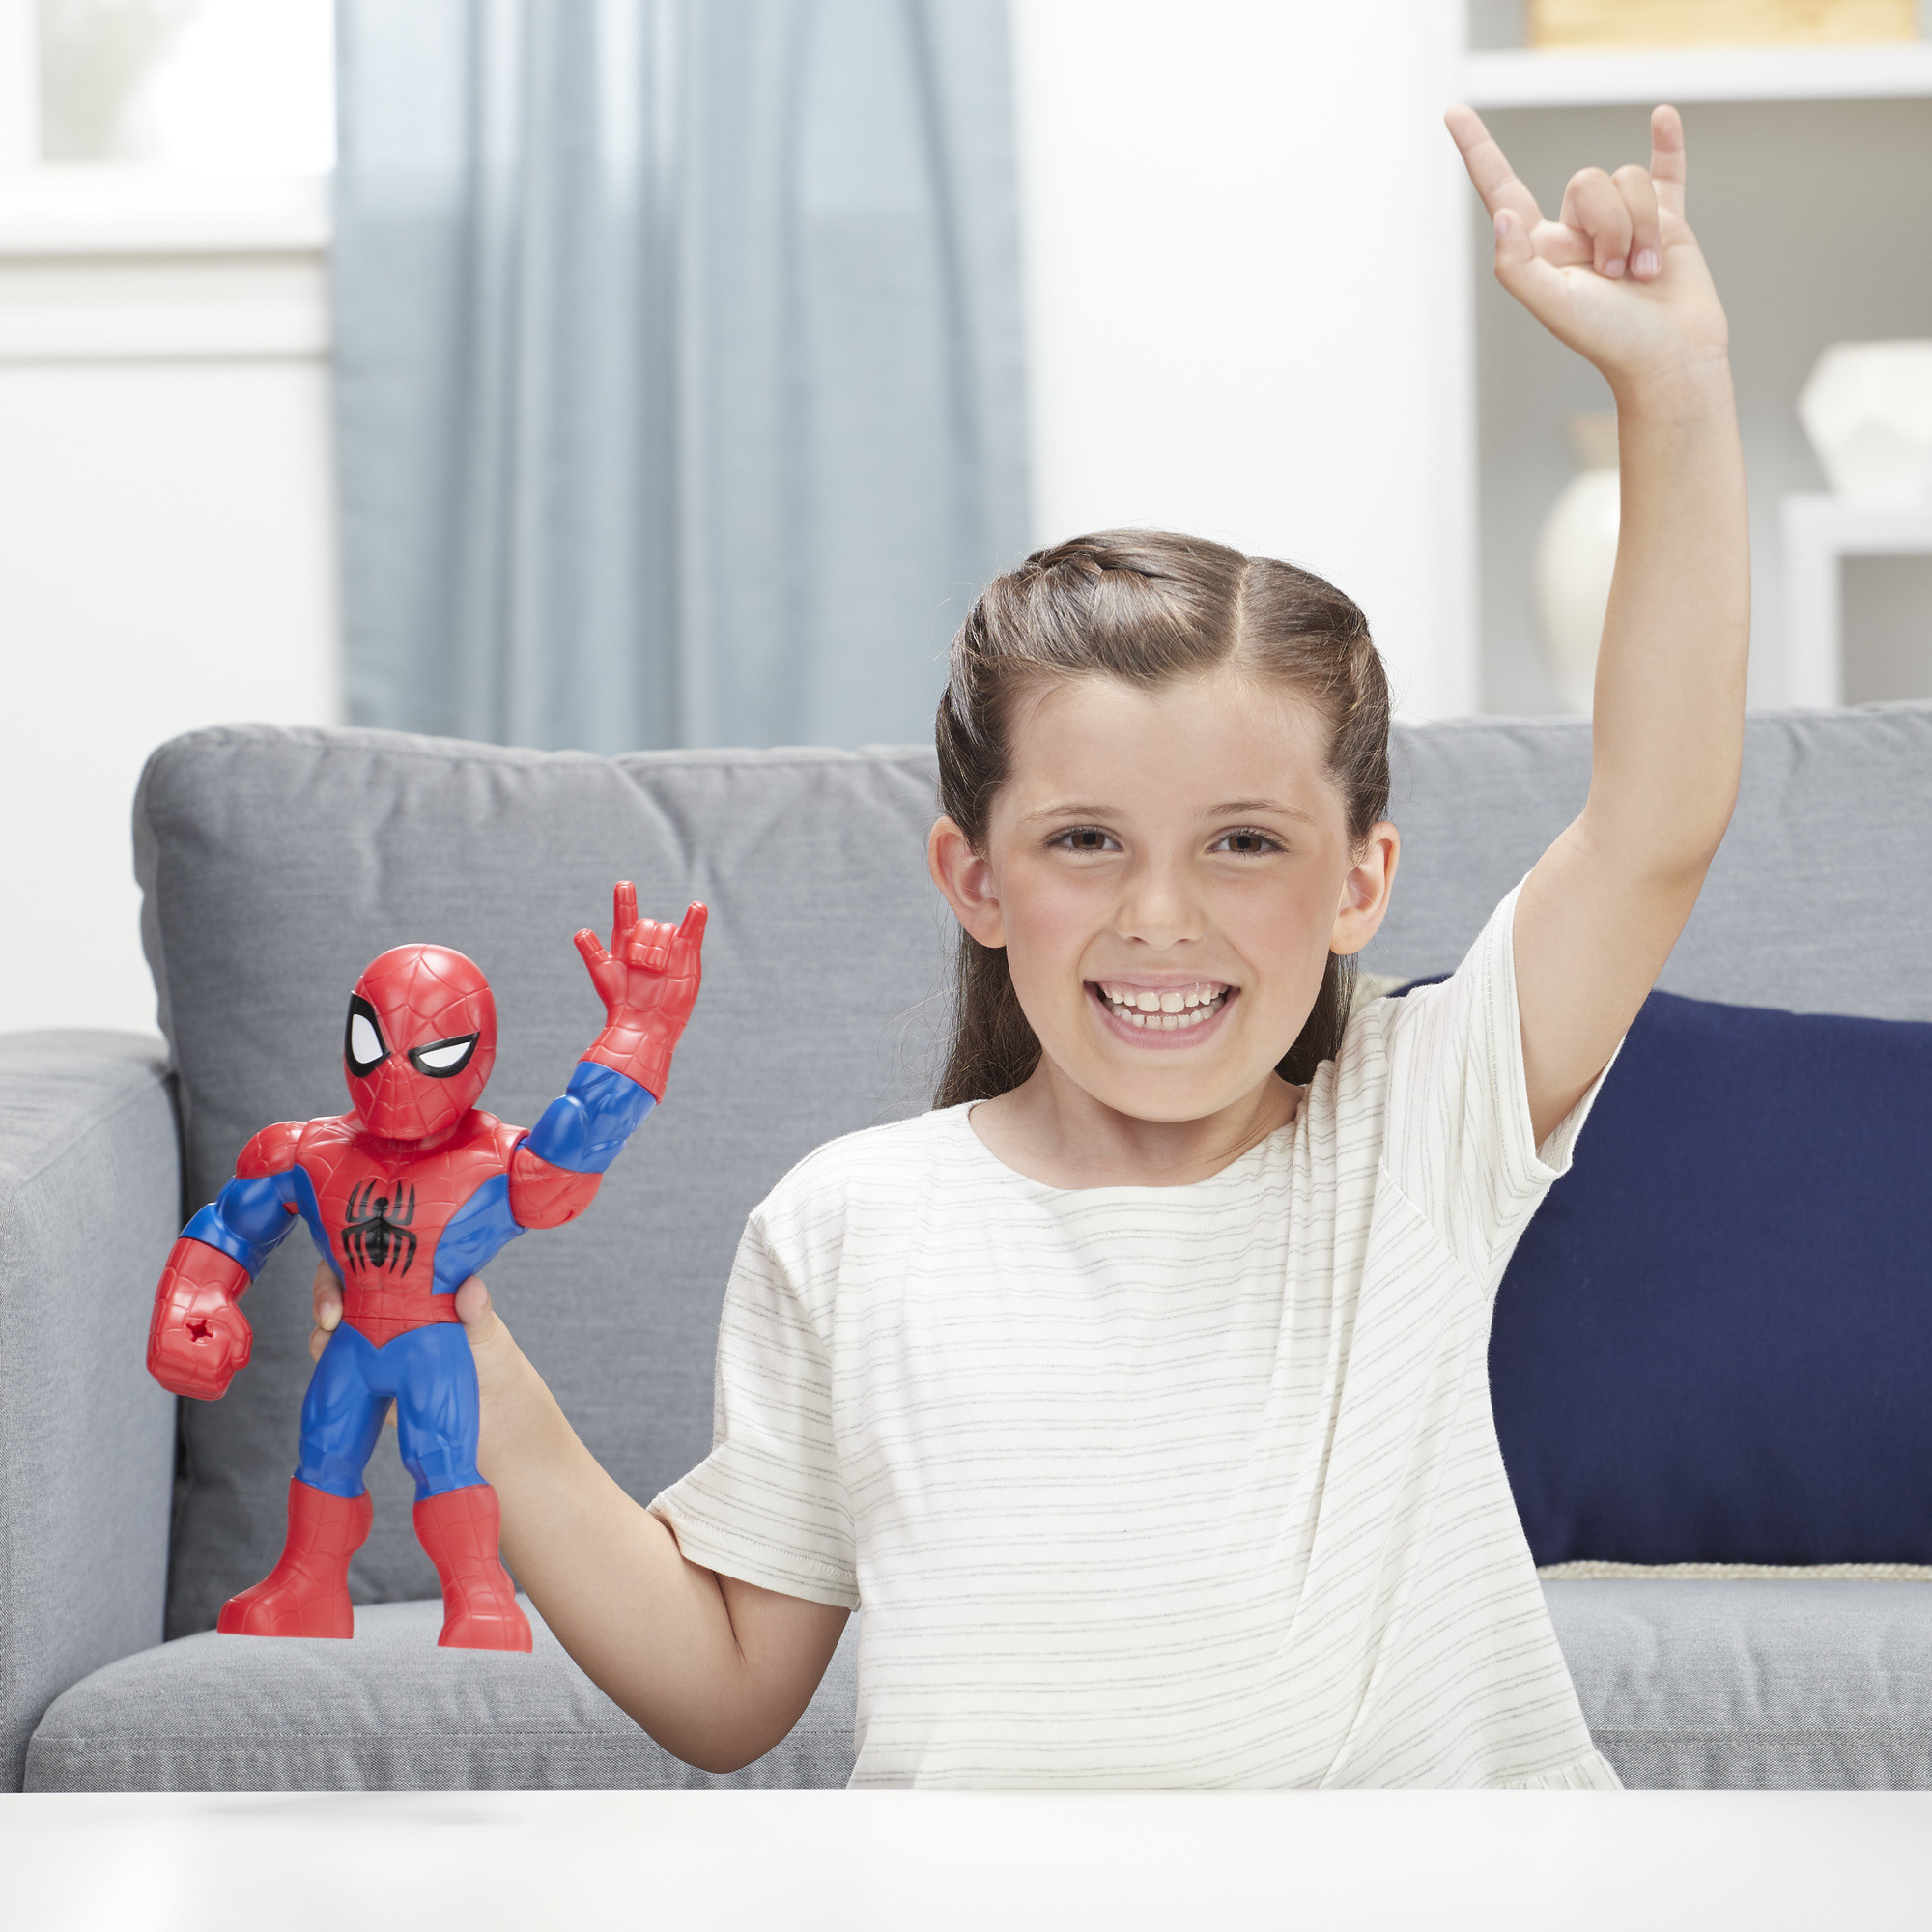 kid imitating a spider-man figure with both of their left hands up in the air with the web shooting hand signal